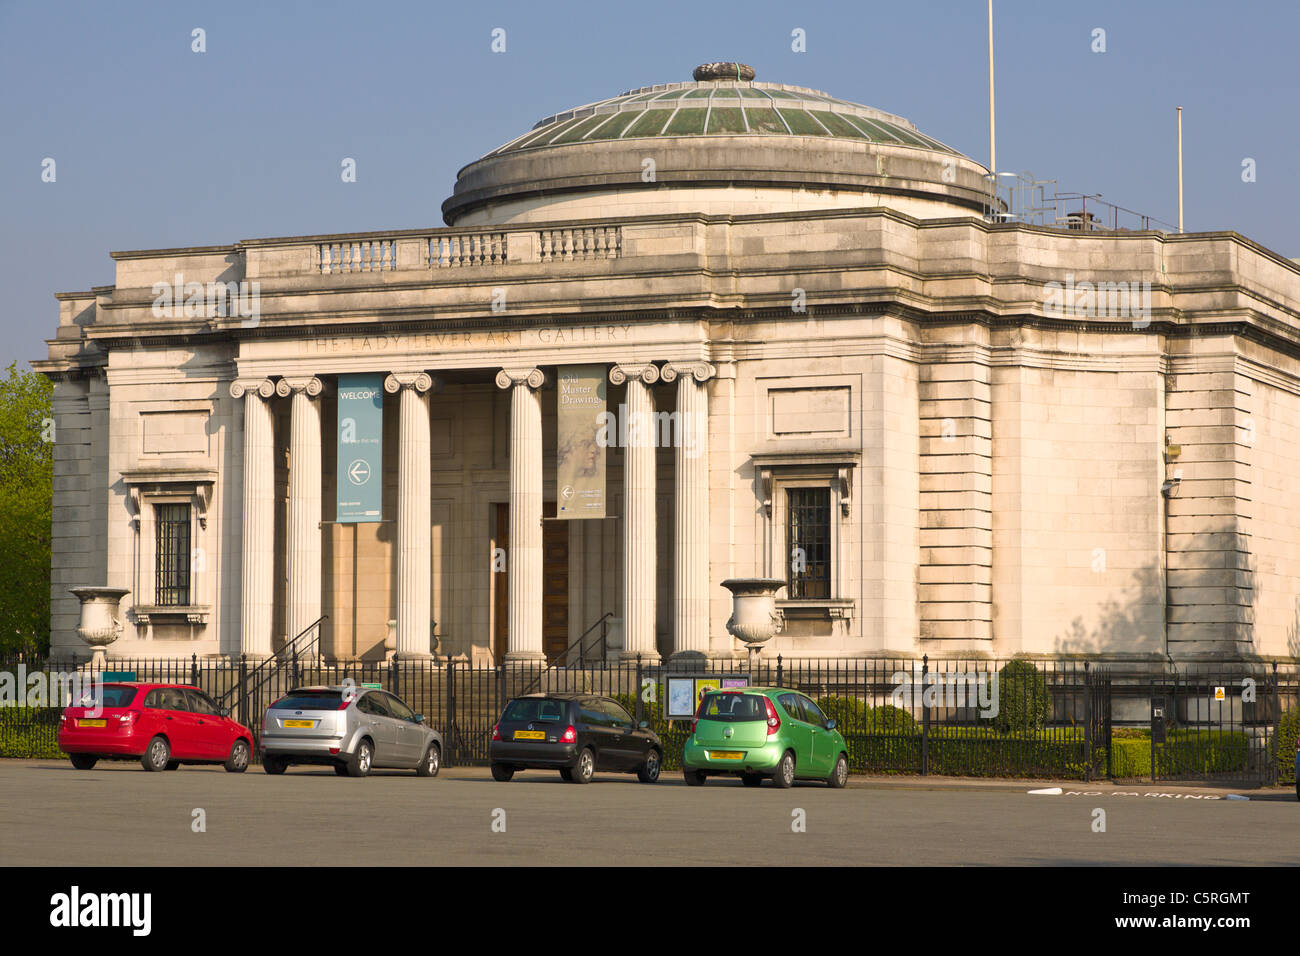 The Lady Lever Art Gallery, Port Sunlight, Wirral, England - Stock Image